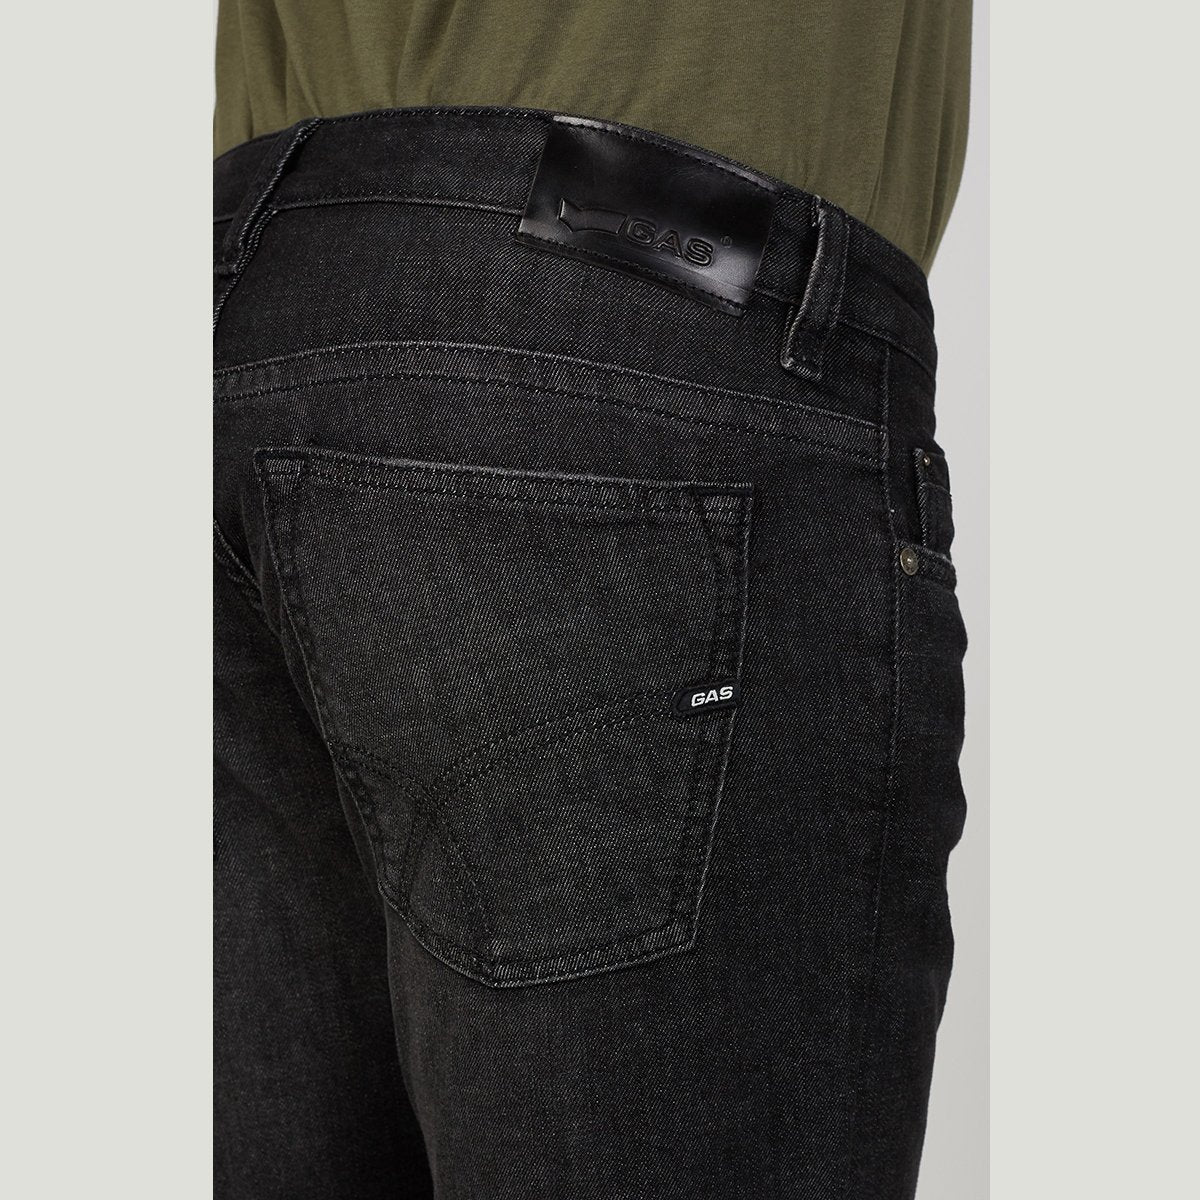 Exclusive basic anders wk13 'regular slim' stretch jeans